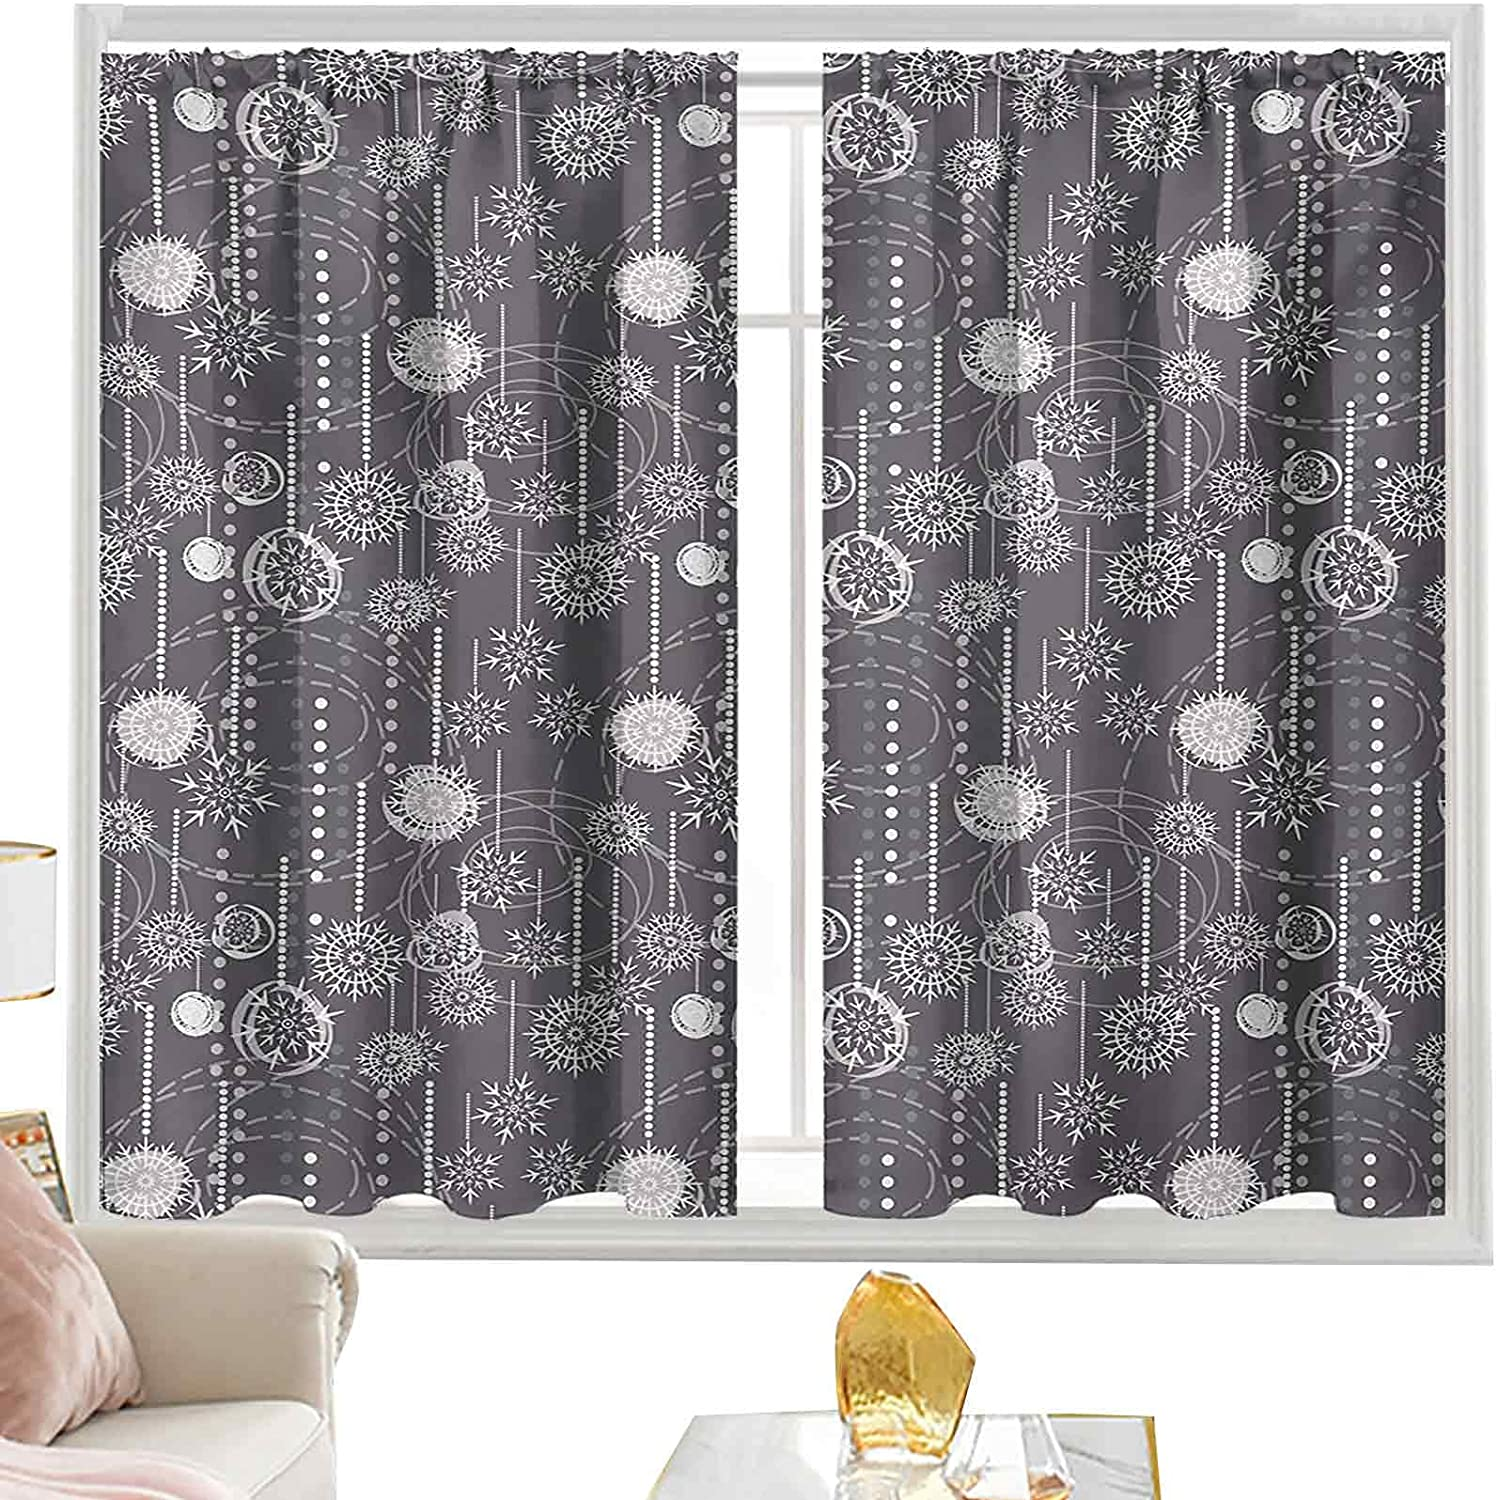 Great interest Max 53% OFF Pocket Rod Curtains Monochrome with Composition Figure Blizzard